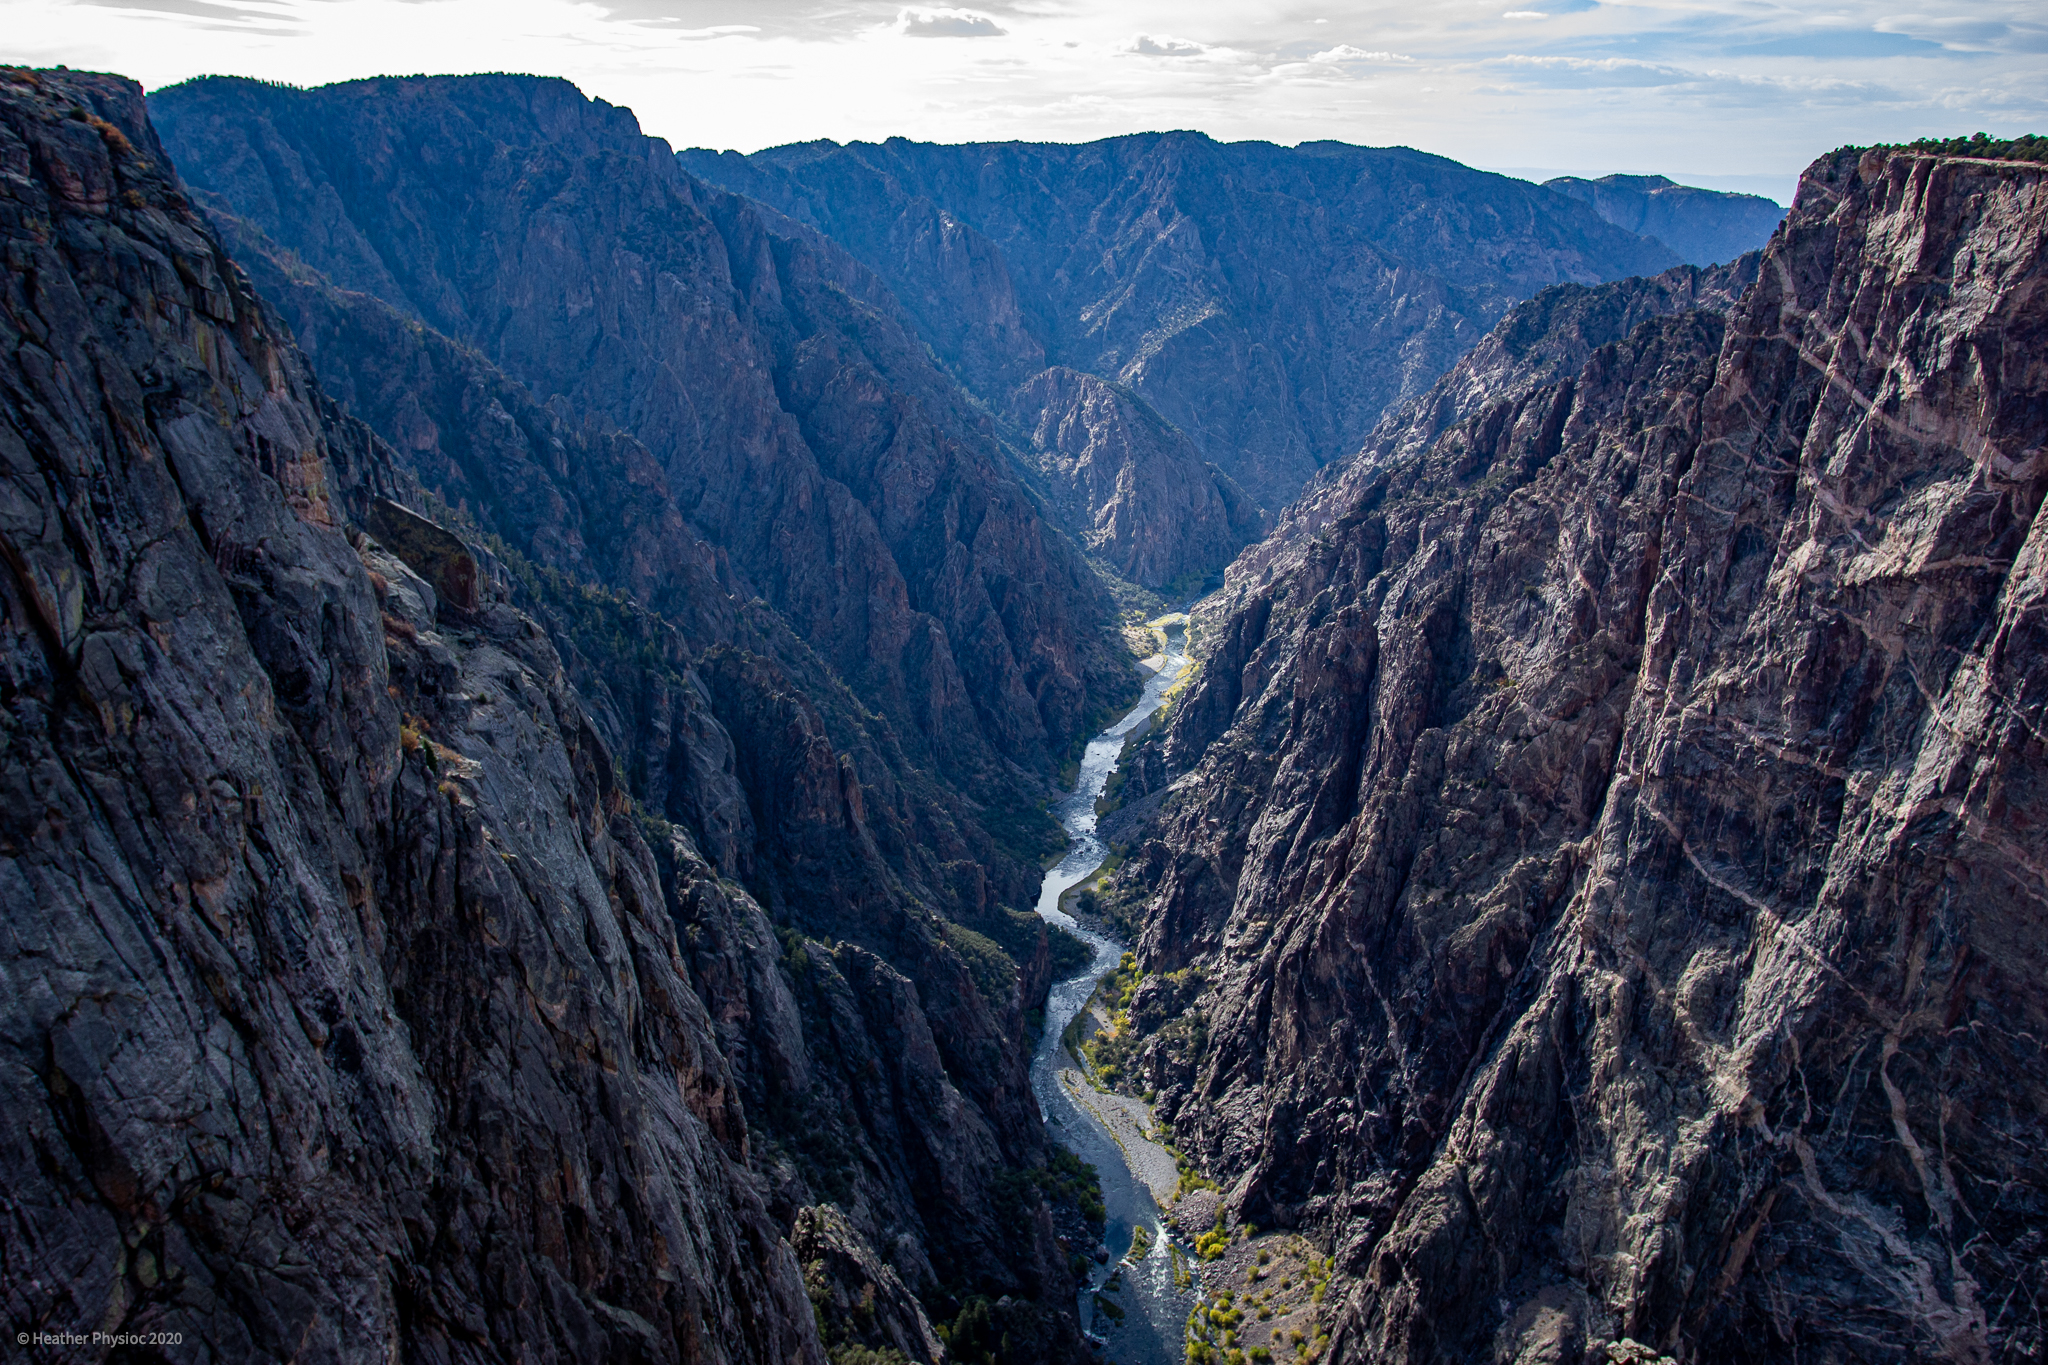 Perspective at Black Canyon of the Gunnison National Park